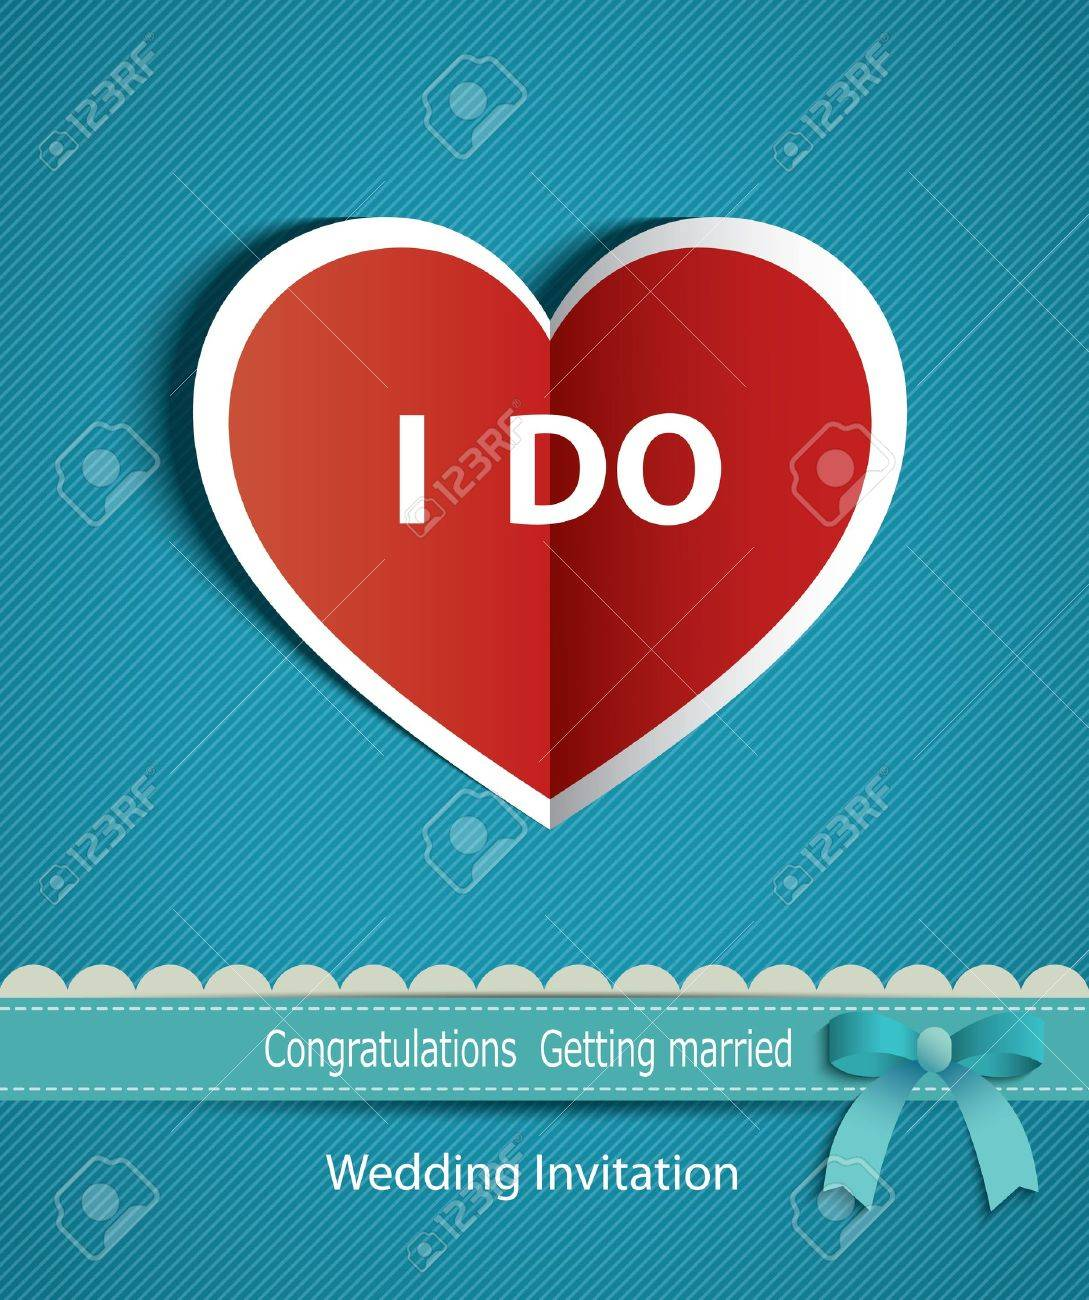 Wedding Card In The Form Of Heart Paper With Ribbon Royalty Free ...